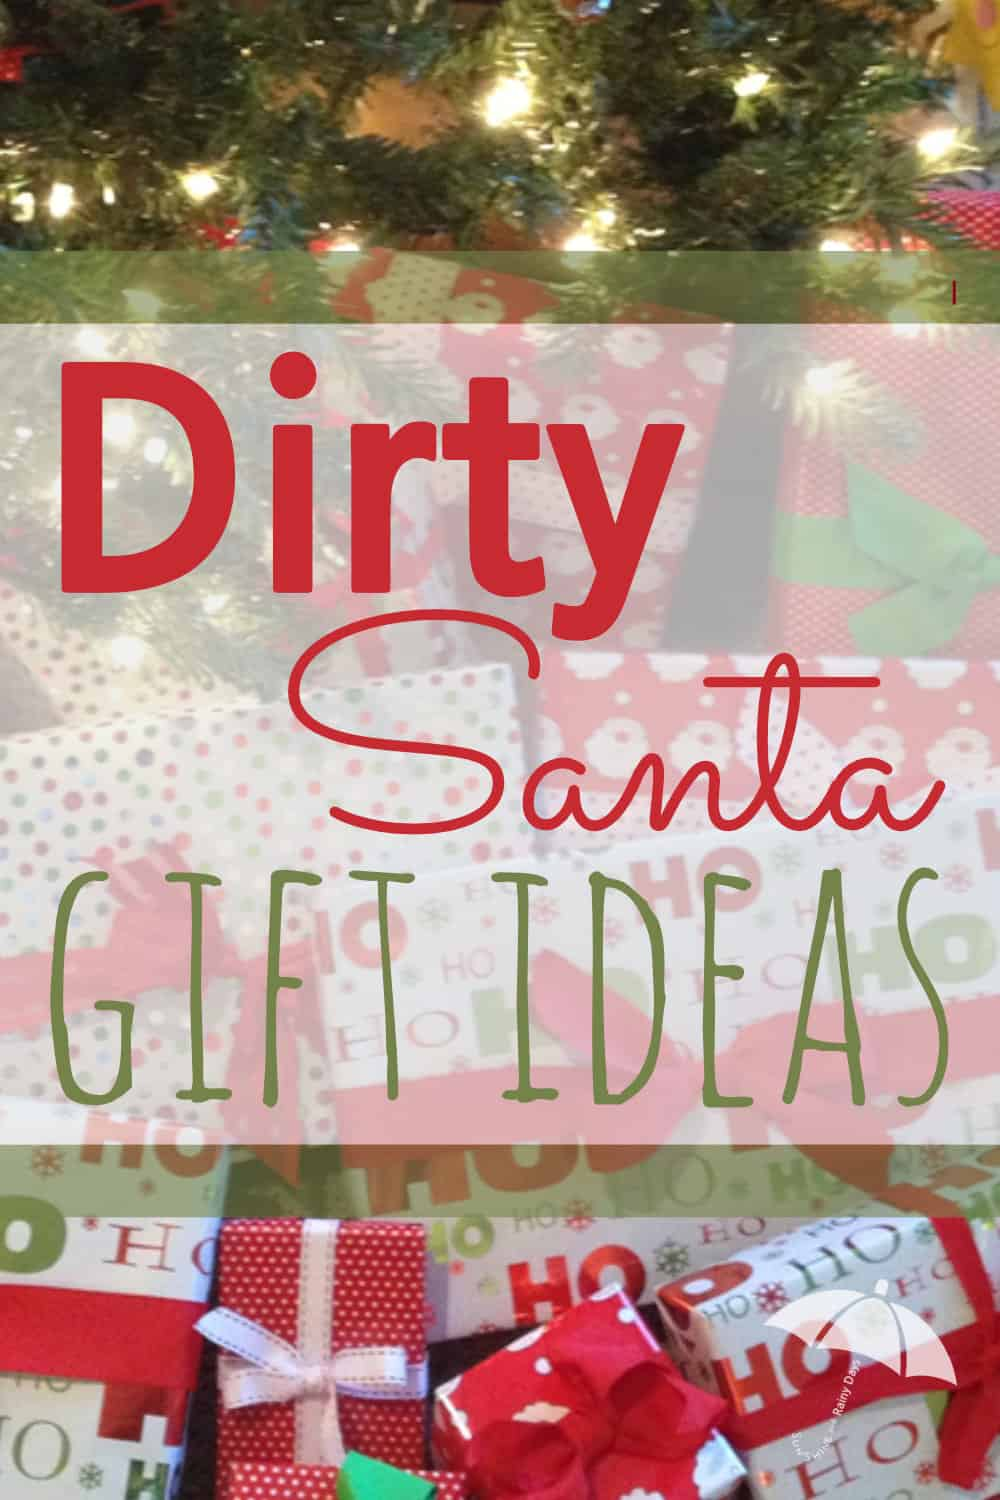 There's going to be a Dirty Santa party and you want to have the best gift. The gift your friends will fight for. The gift that's useful AND fun! Can you pull it off?